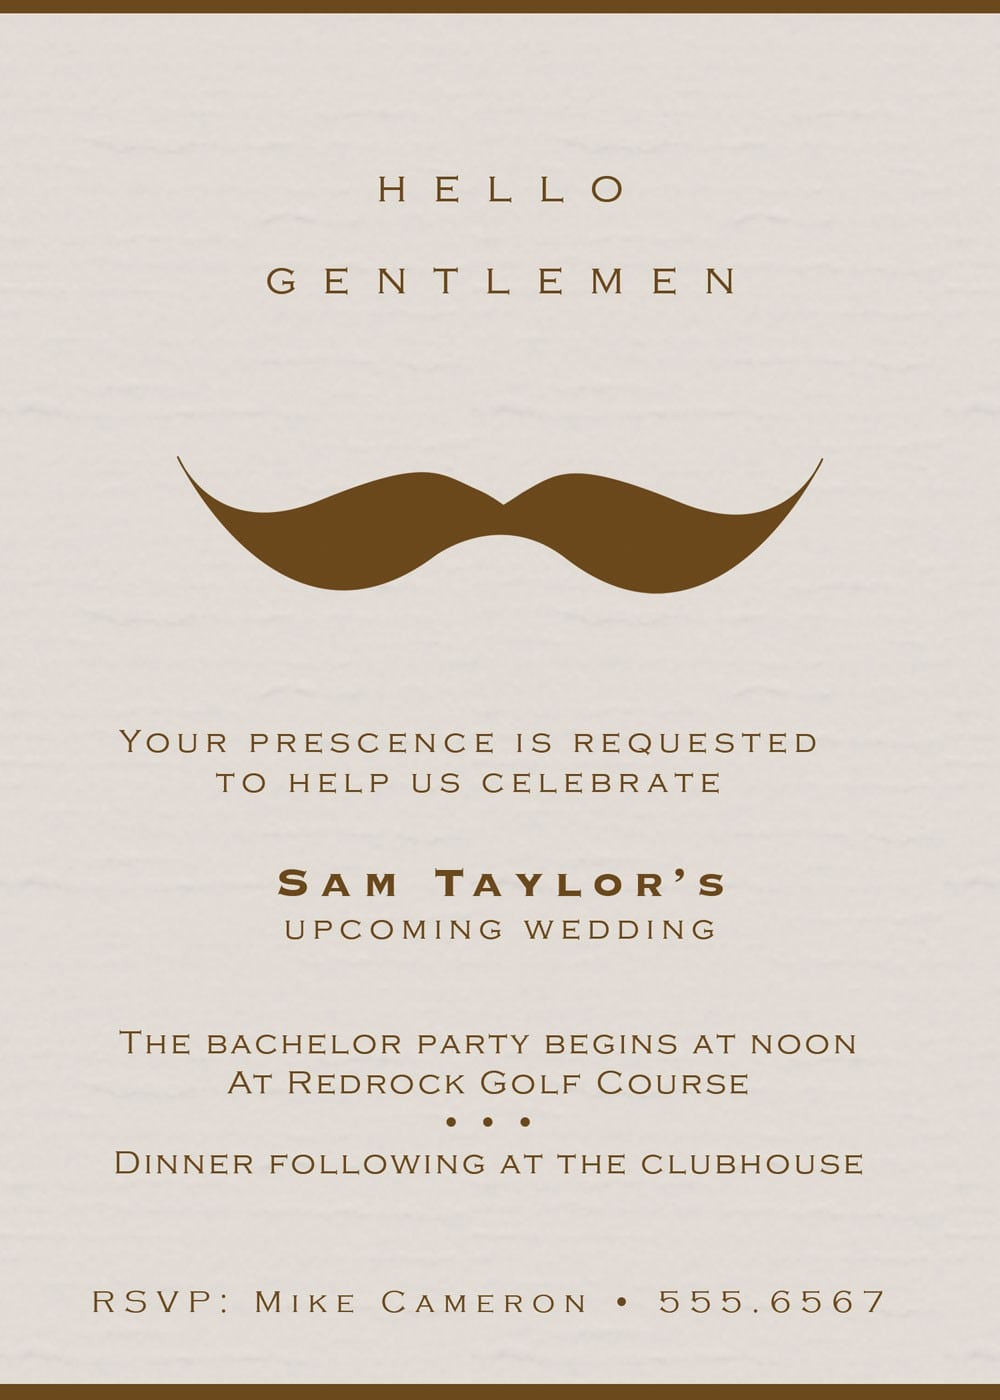 Bachelor Party Invitations Stunning Bachelor Party Invitations 63